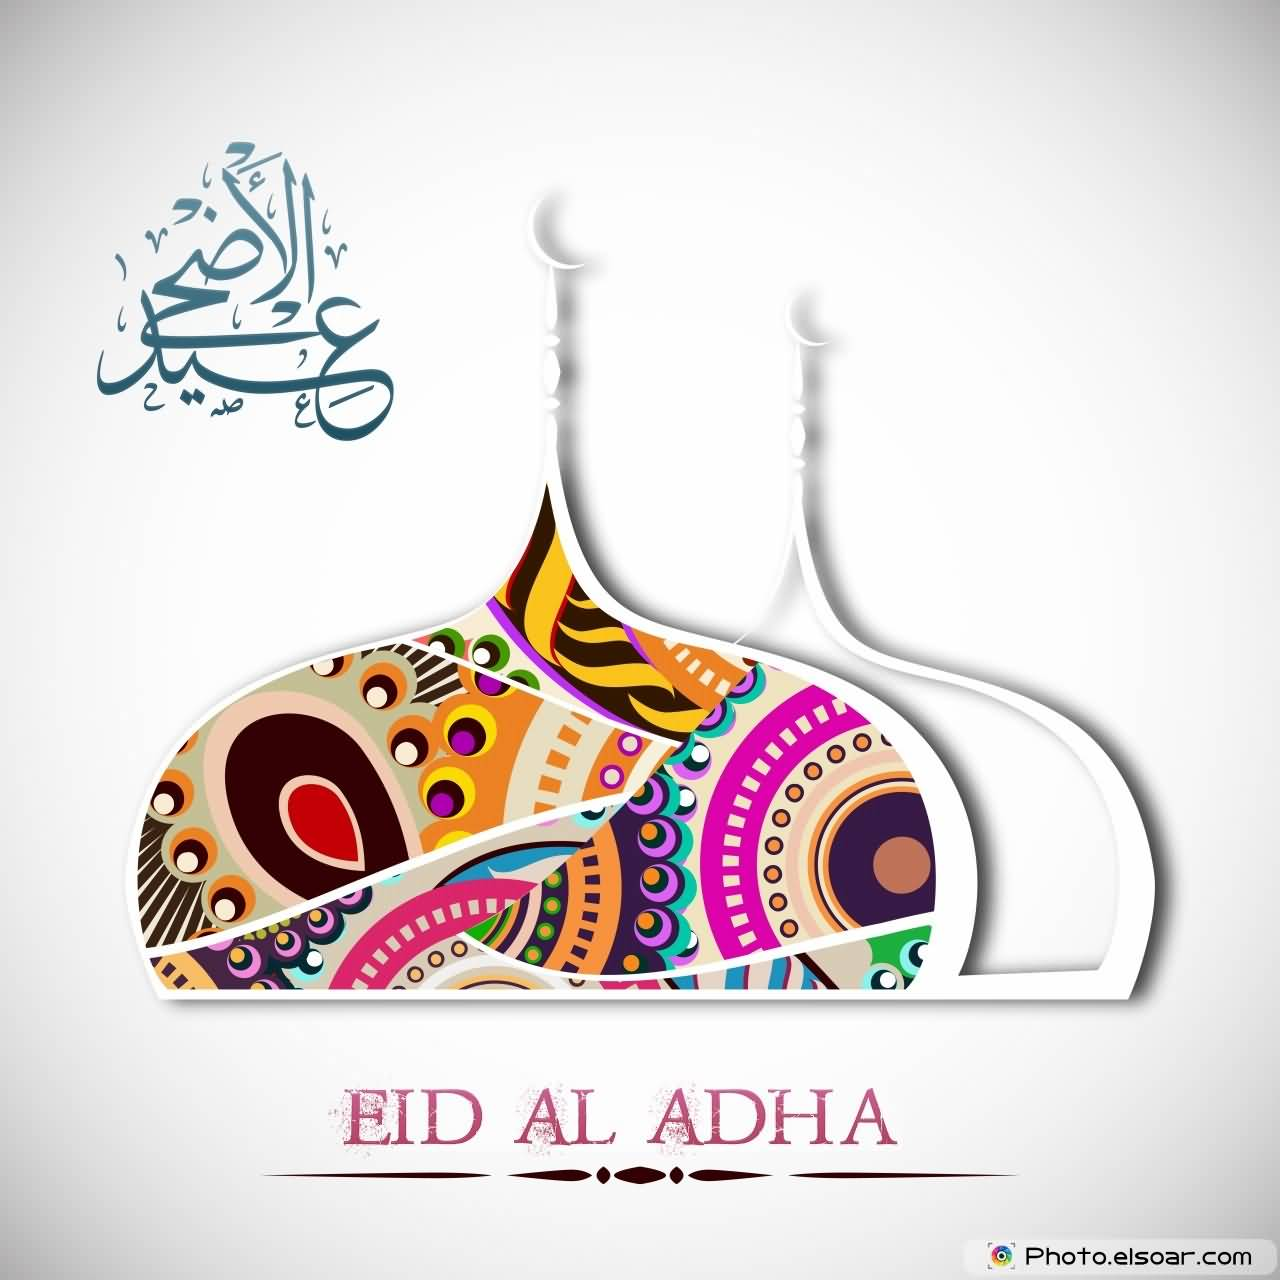 Happy eid al adha greeting cards gallery greeting card examples 45 best wishes ideas about eid al adha 2017 on askideas eid adha mubarak greeting card kristyandbryce Images